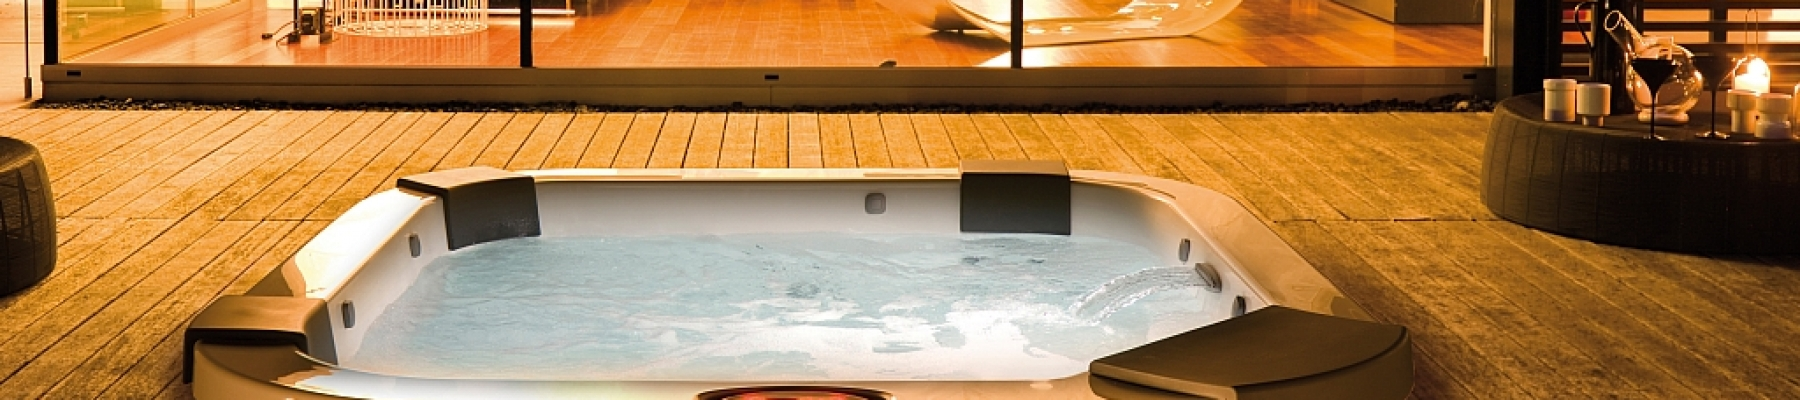 Using hydrotherapy to rehabilitate injured muscles and relieve pain